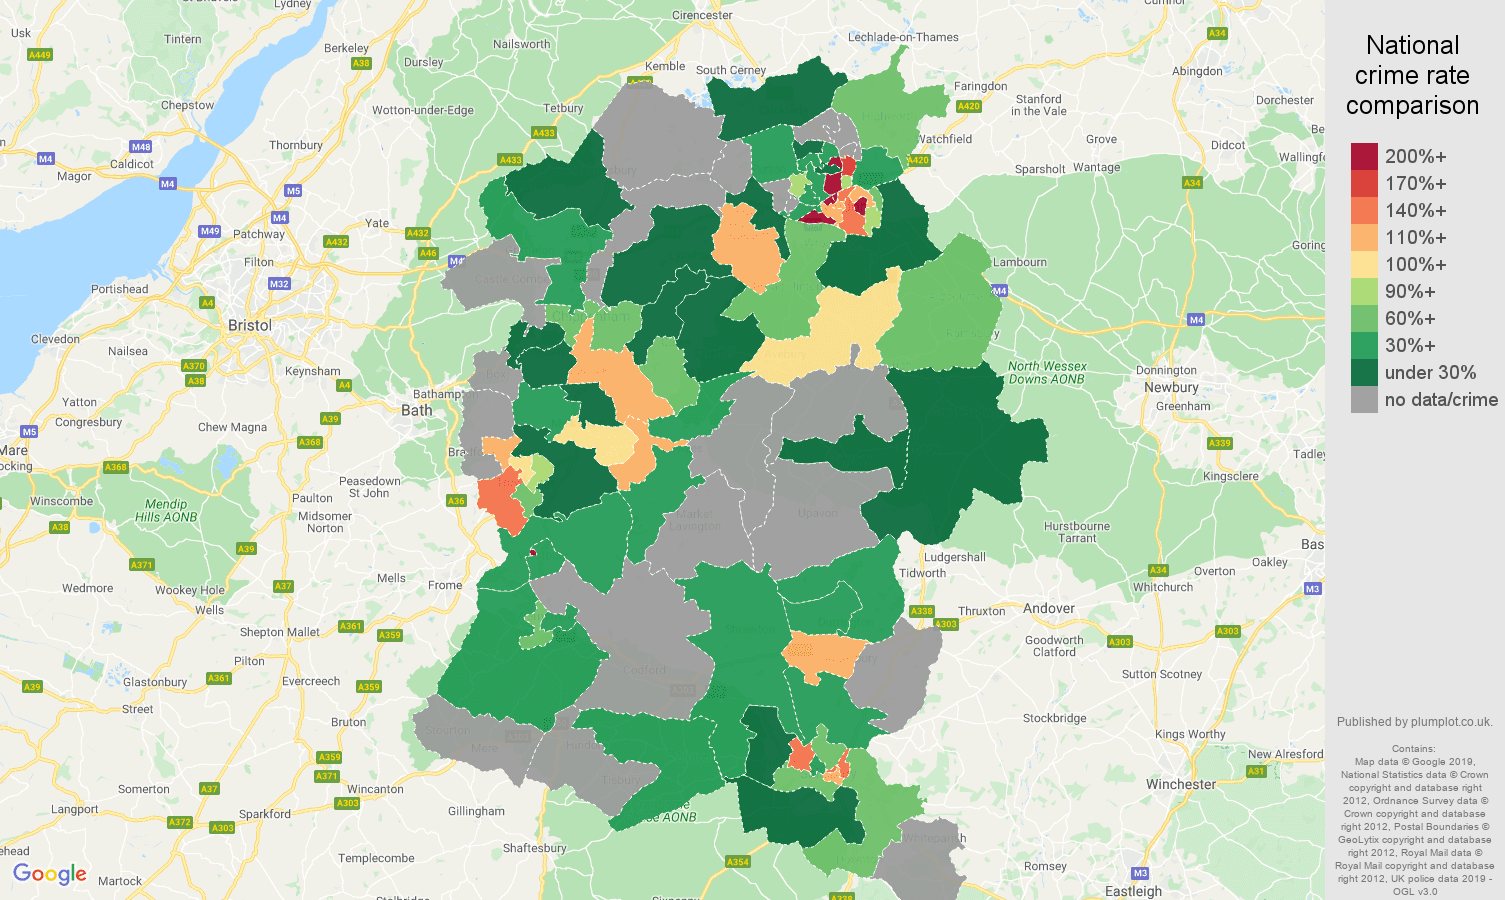 Wiltshire possession of weapons crime rate comparison map